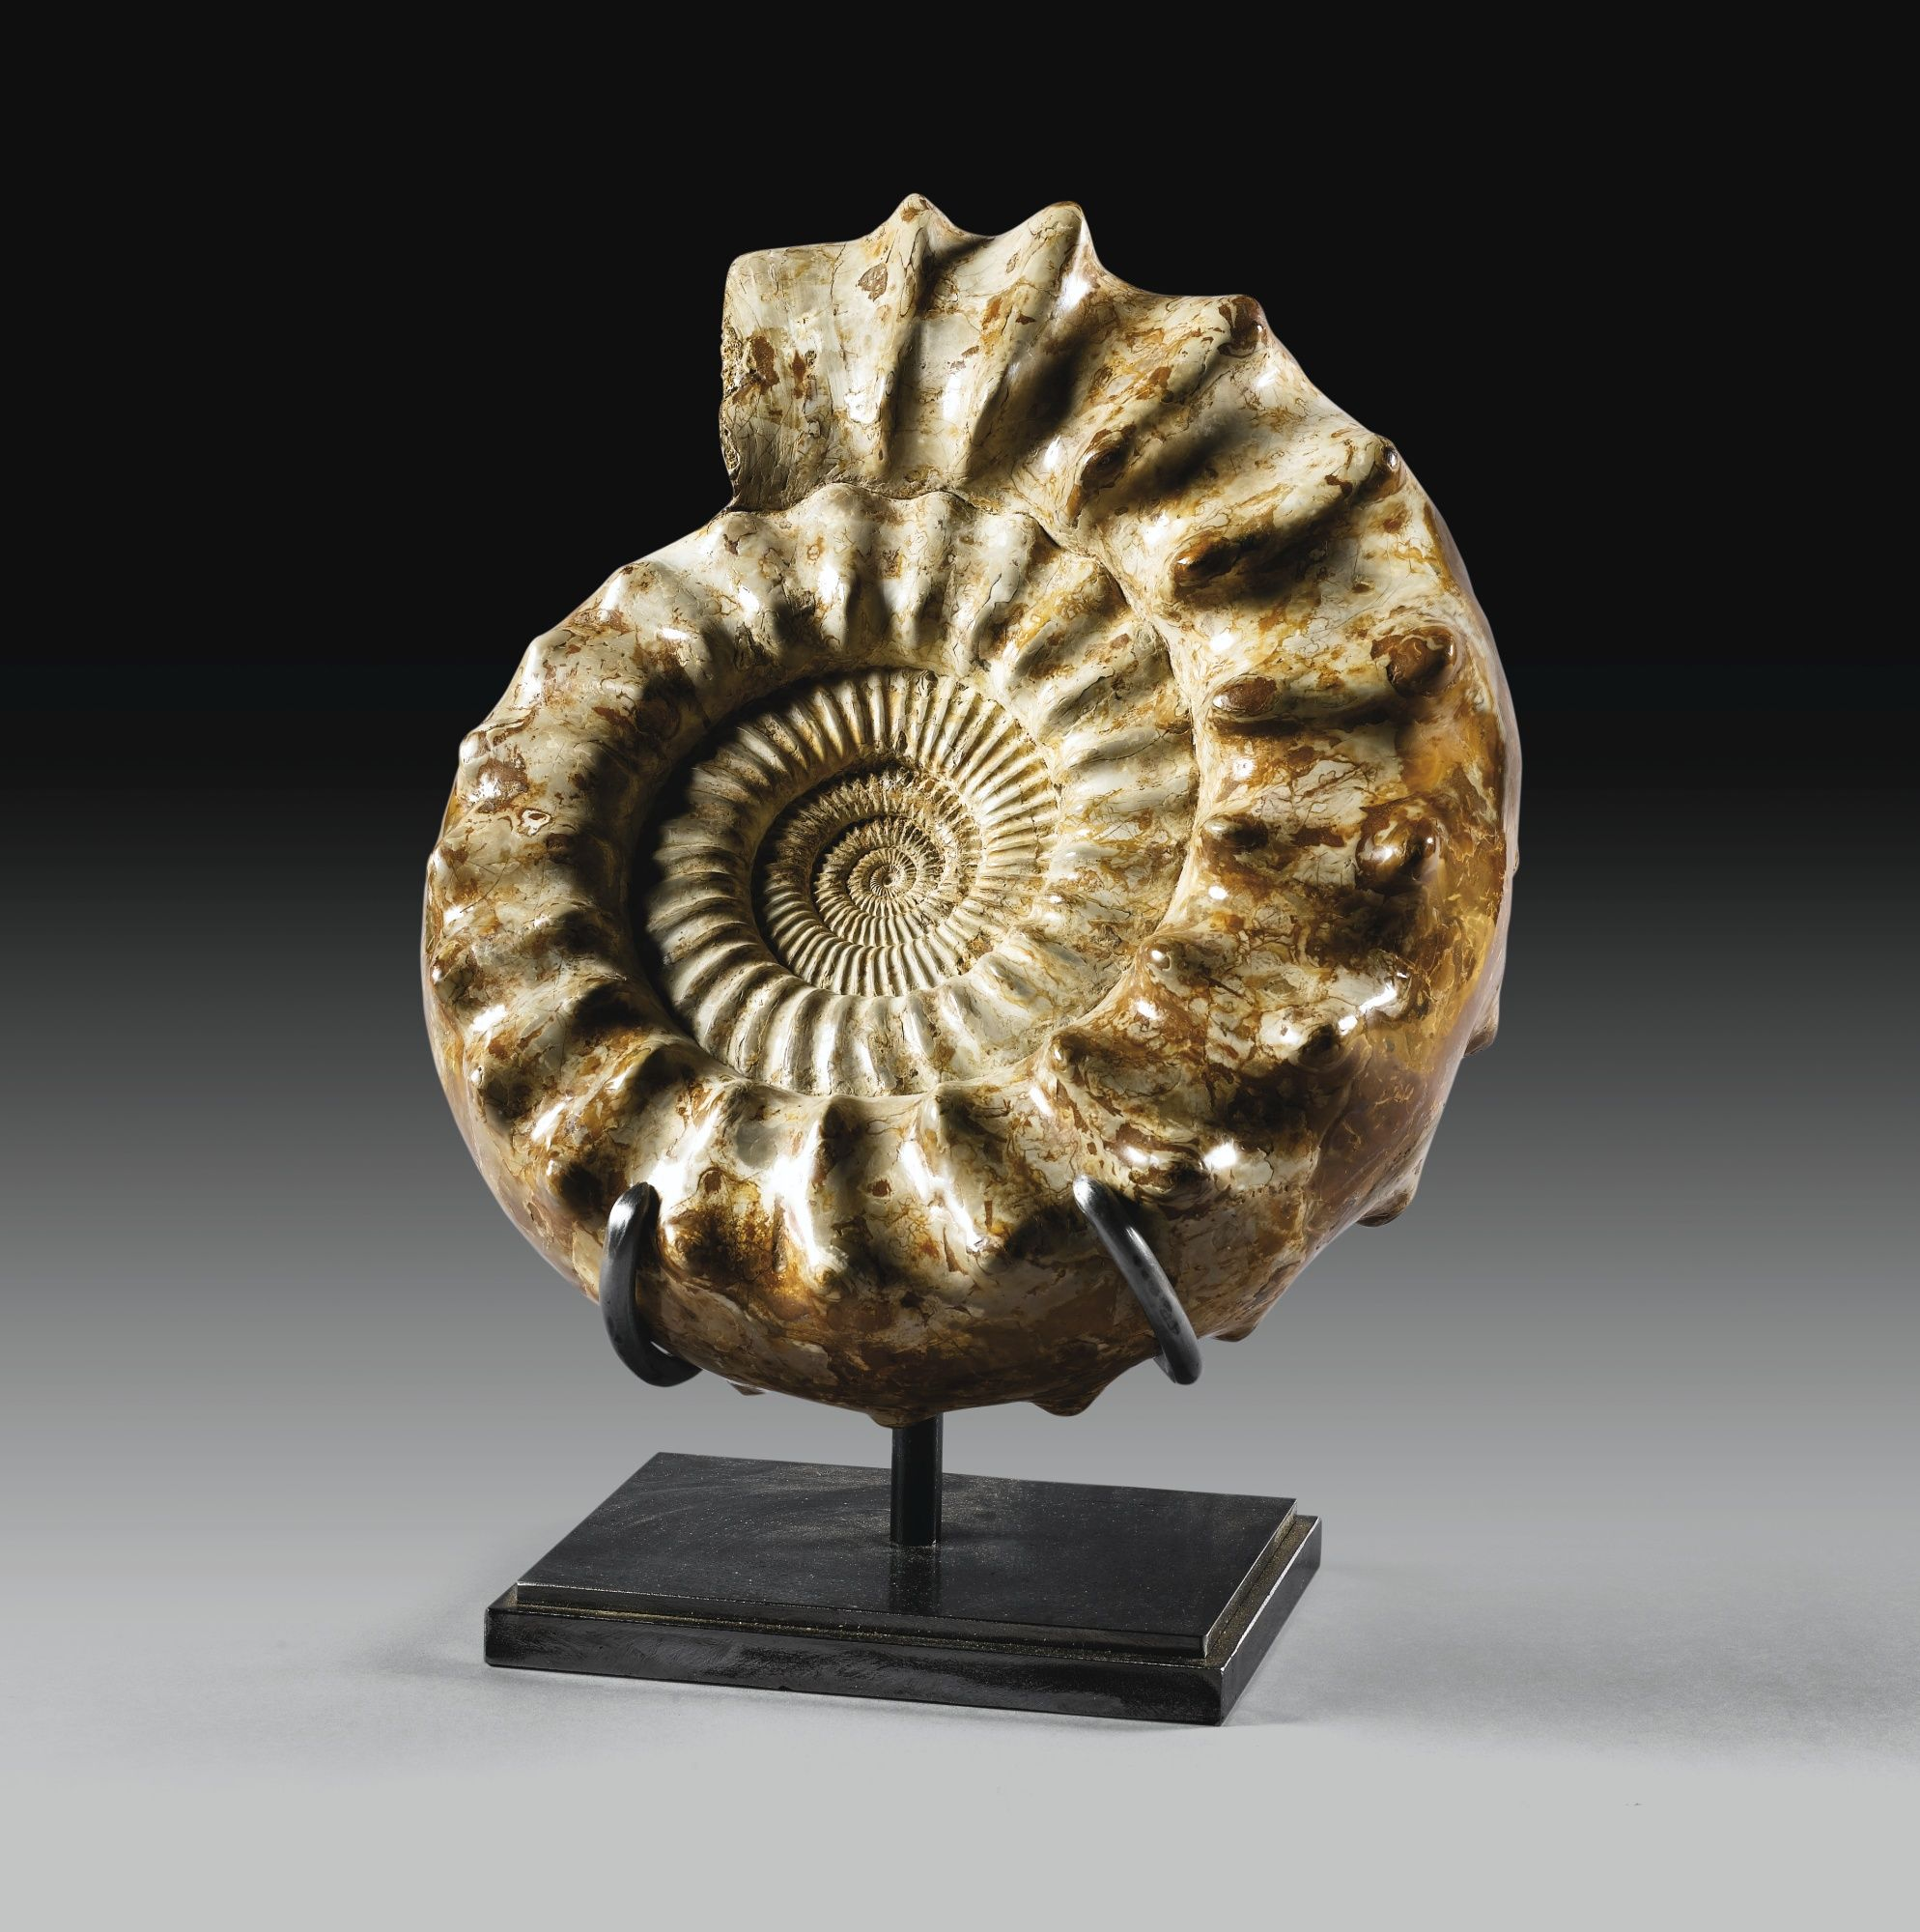 A NICE KRANOSPHINCTES RABEI  AMMONITE (COLLIGNON 1959), OXONIAN, UPPER JURASSIC, TULÉAR, MADAGASCAR Estimate  5,000 — 6,000  EUR  LOT SOLD. 8,125 EUR (Hammer Price with Buyer's Premium)